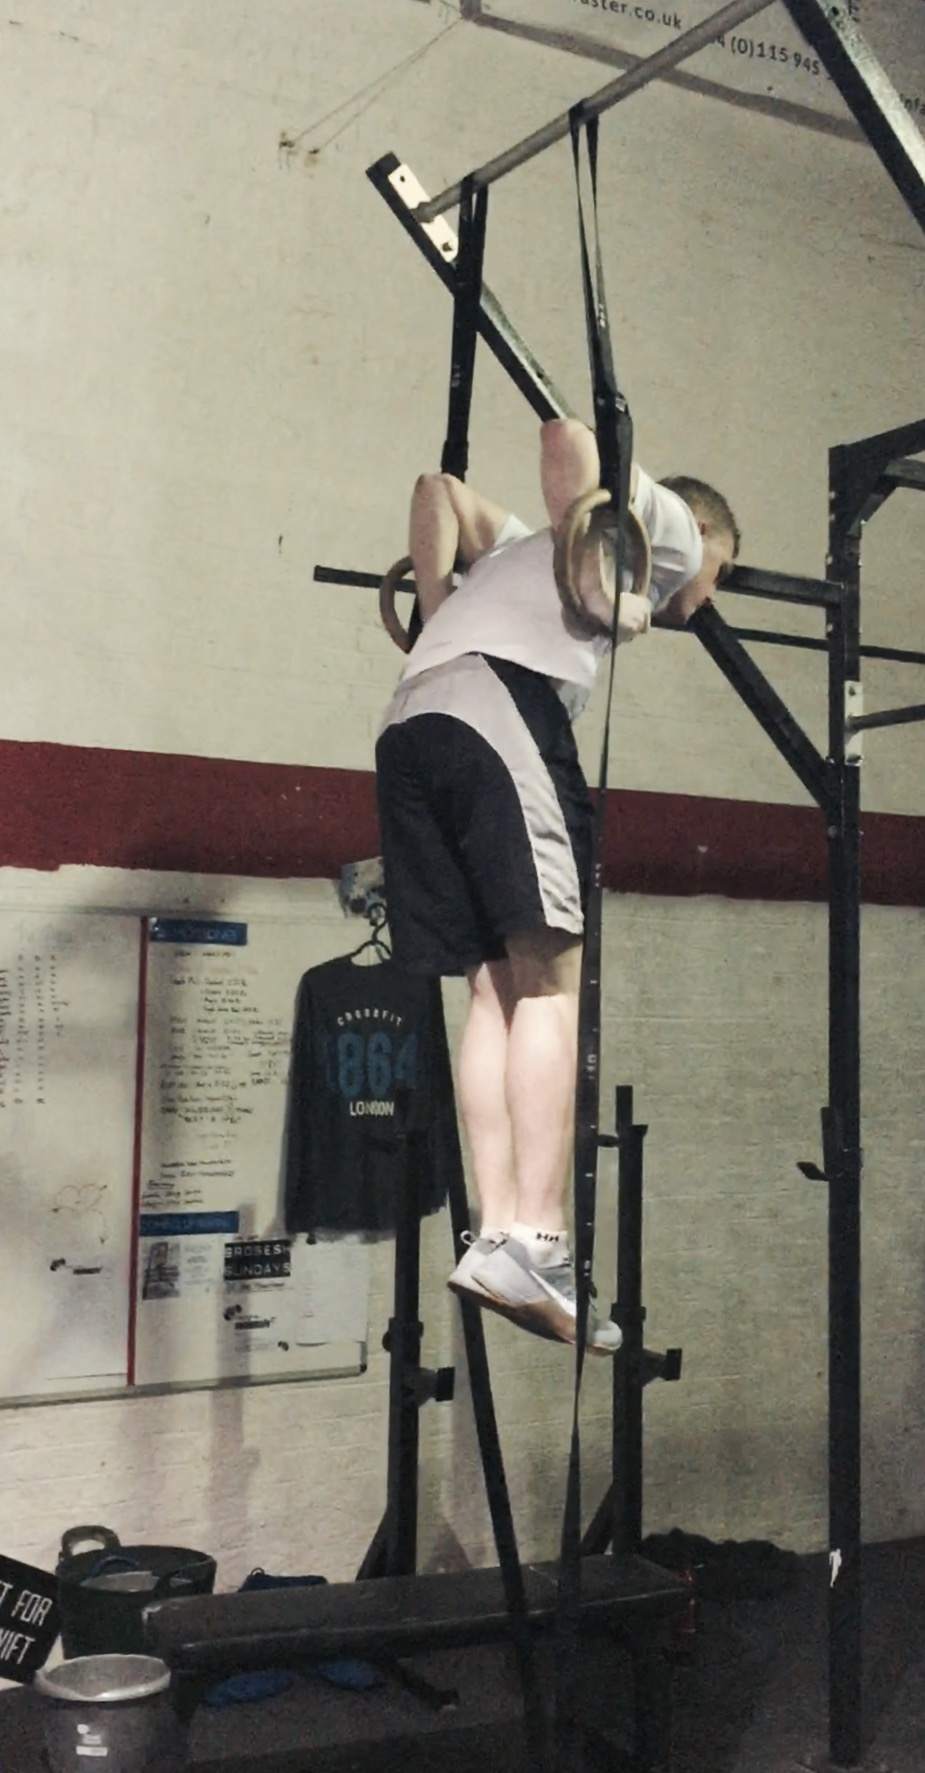 Throwback to Salt's first muscle-up!